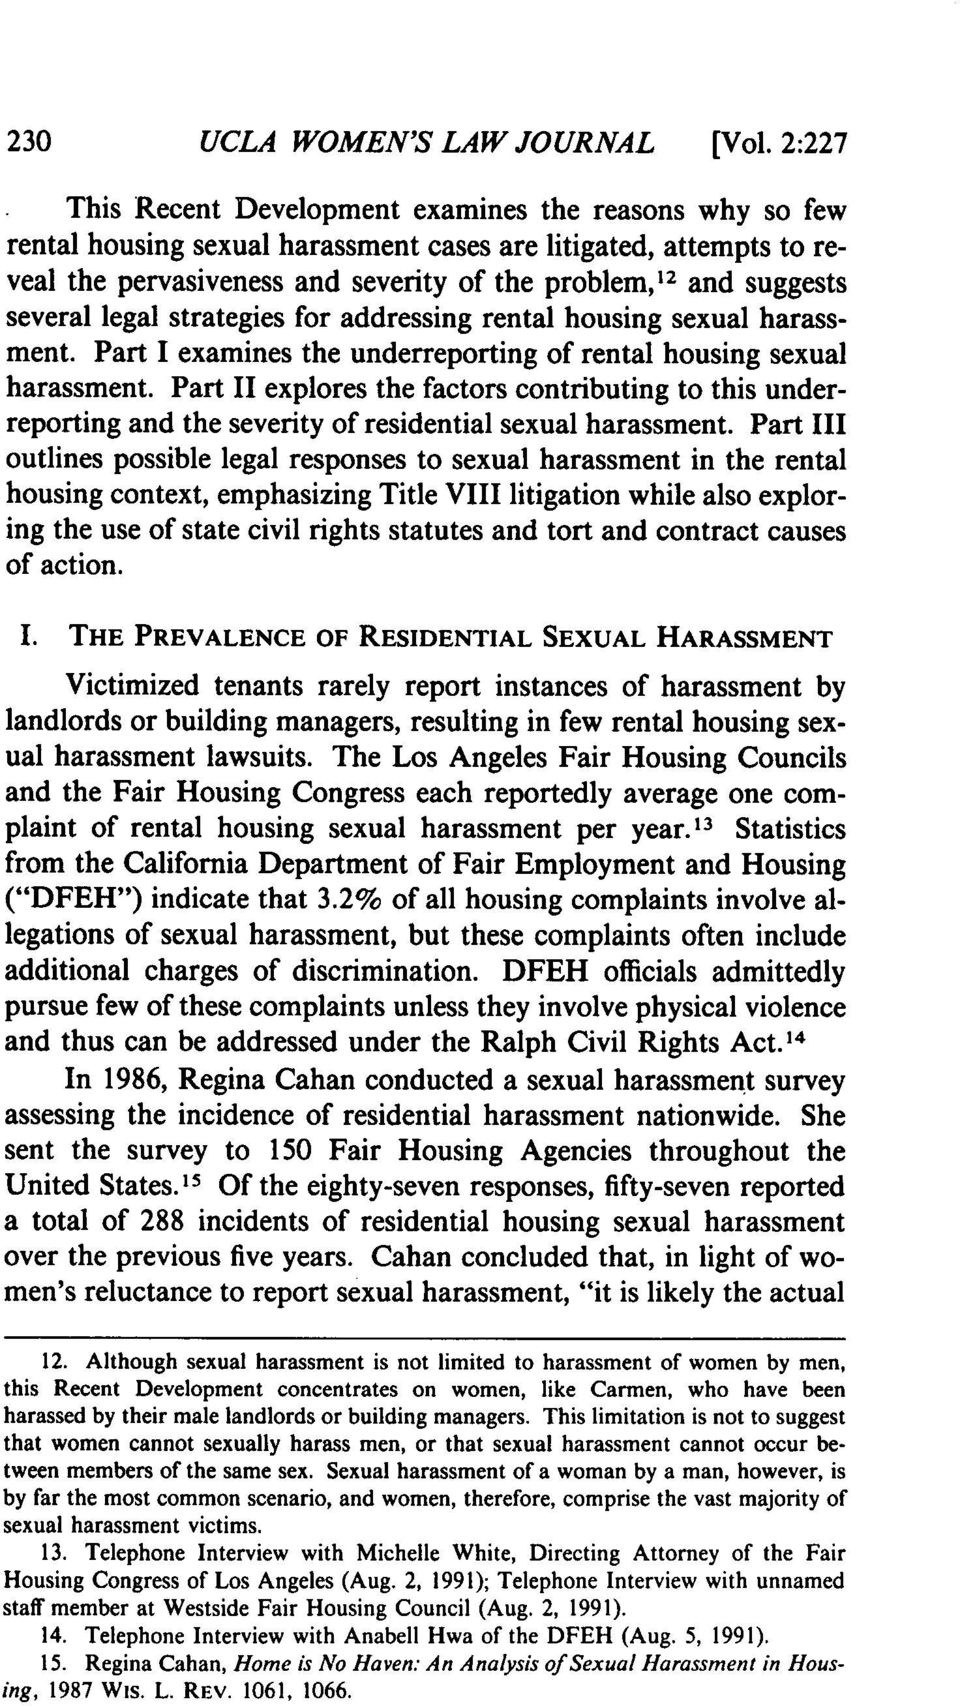 several legal strategies for addressing rental housing sexual harassment. Part I examines the underreporting of rental housing sexual harassment.